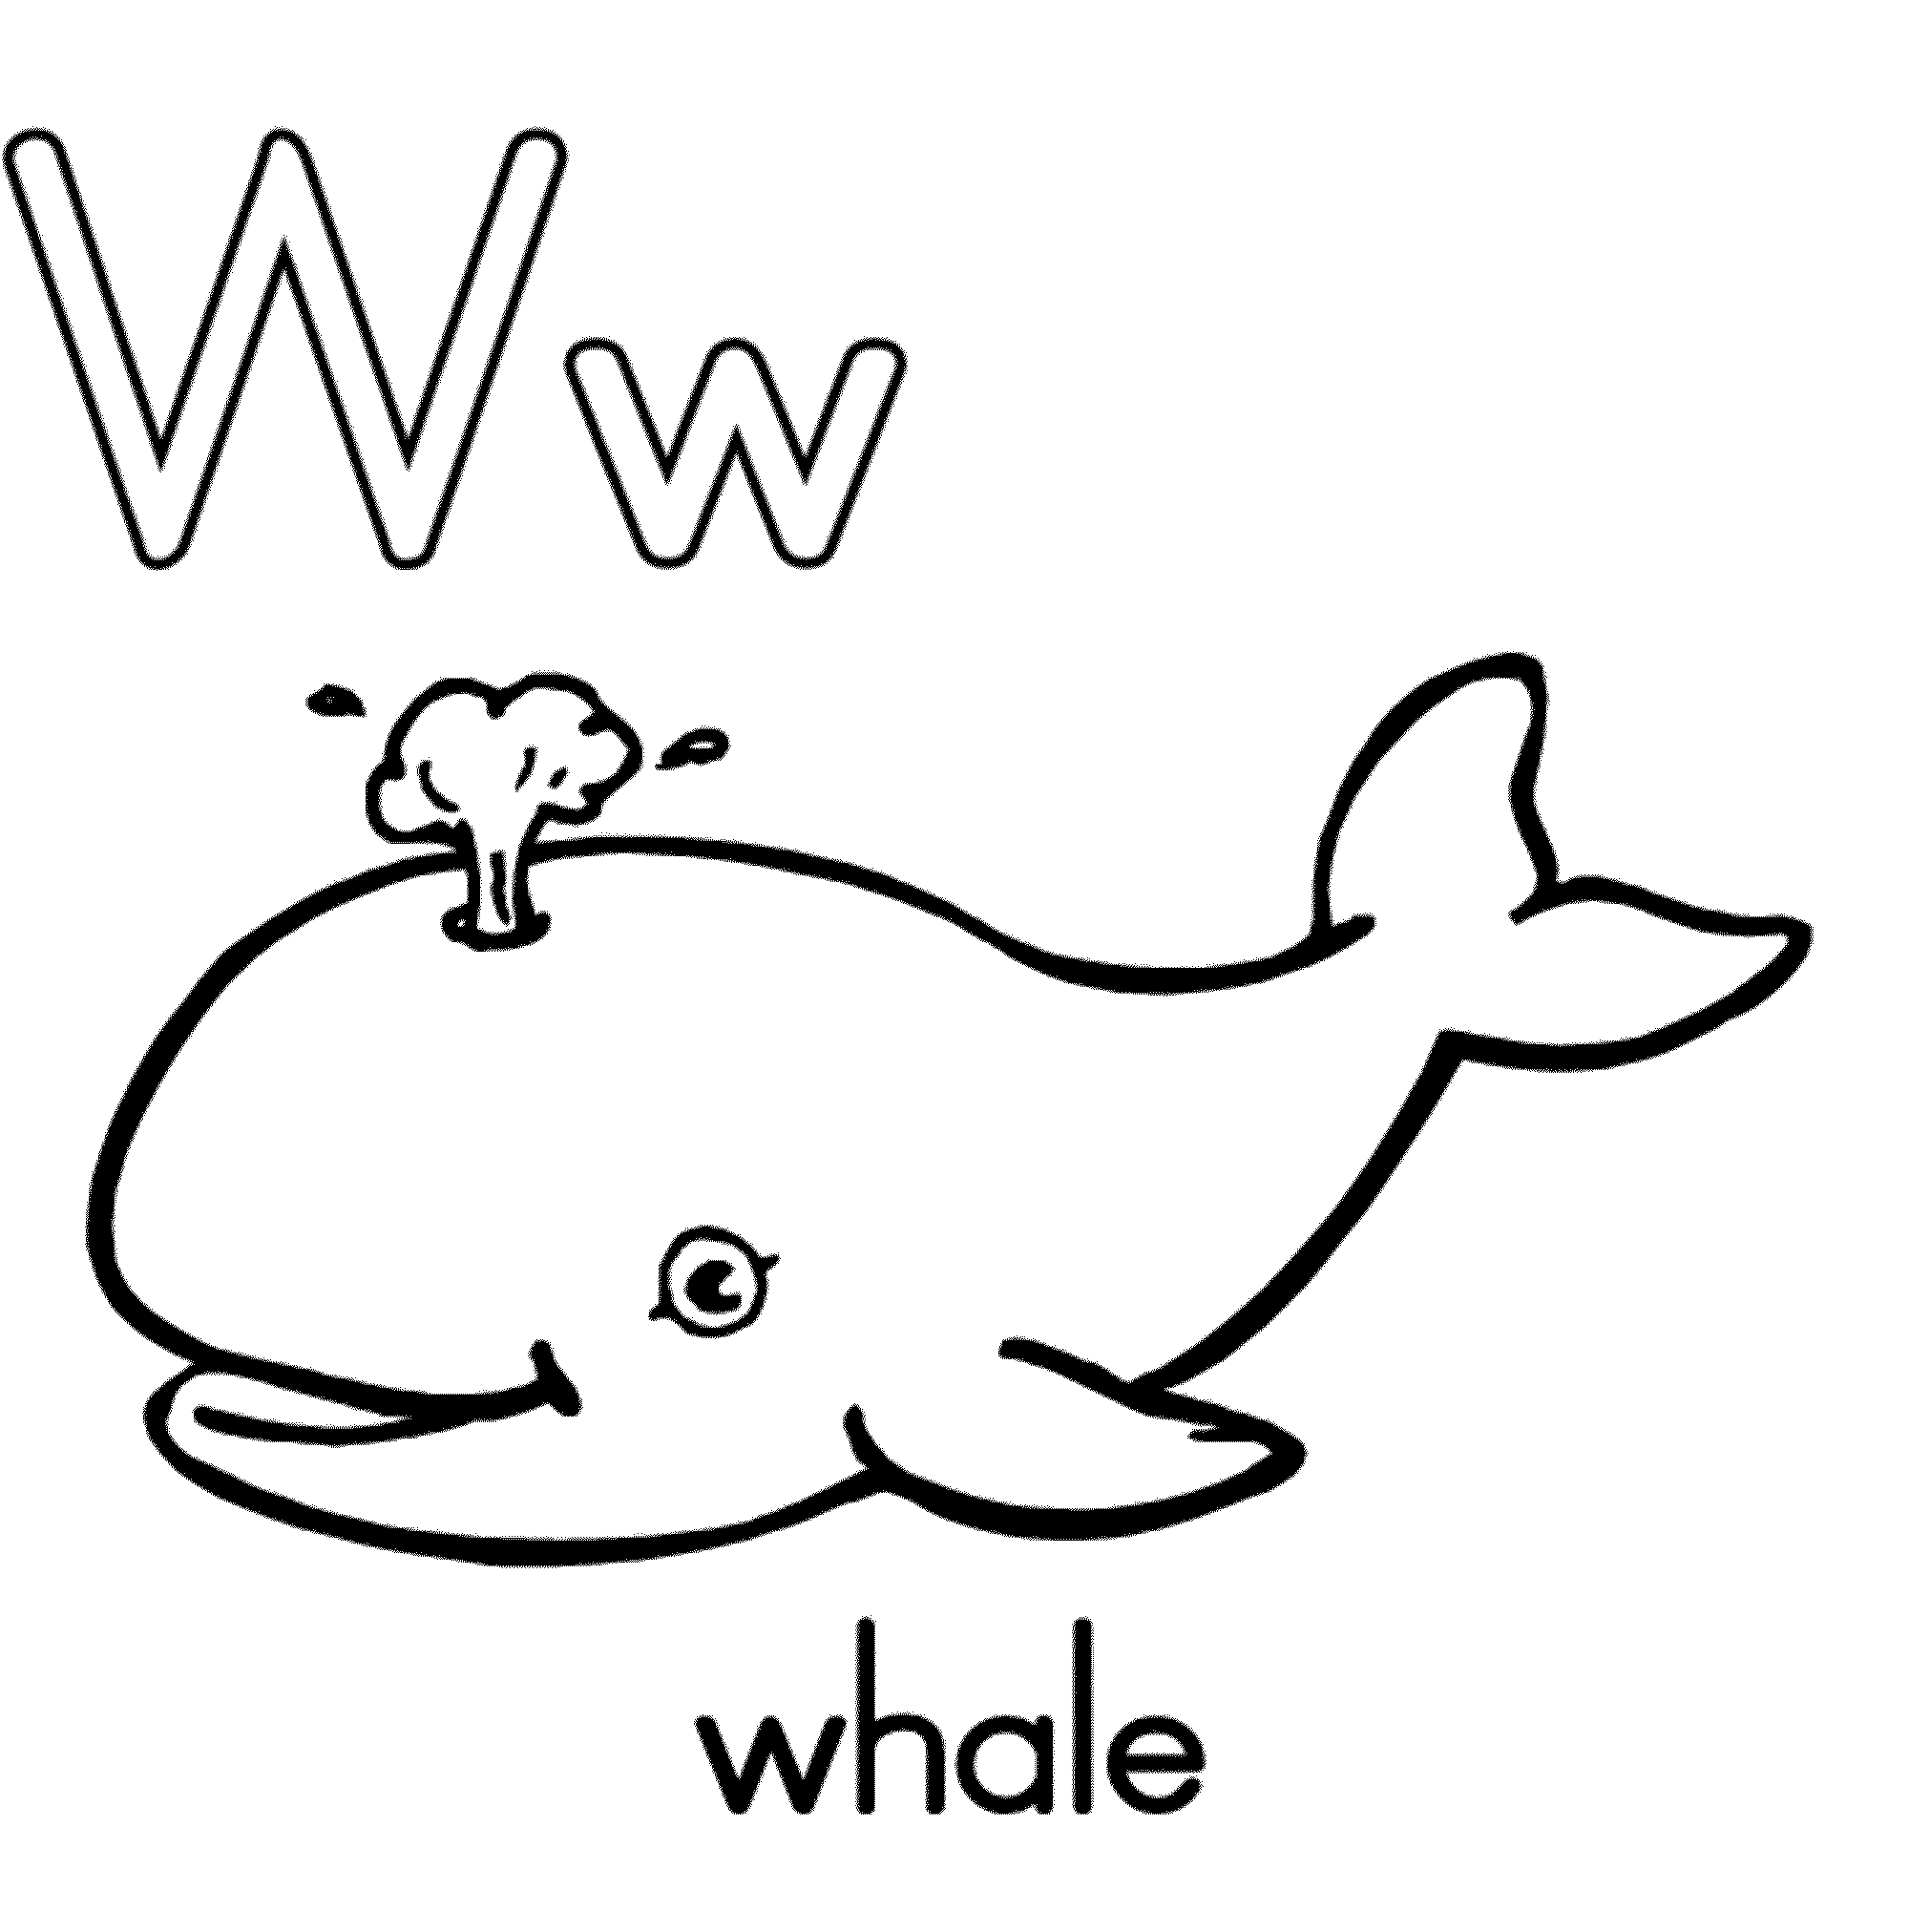 Orca printable coloring page. | Clipart Panda - Free Clipart Images | 2024x2000